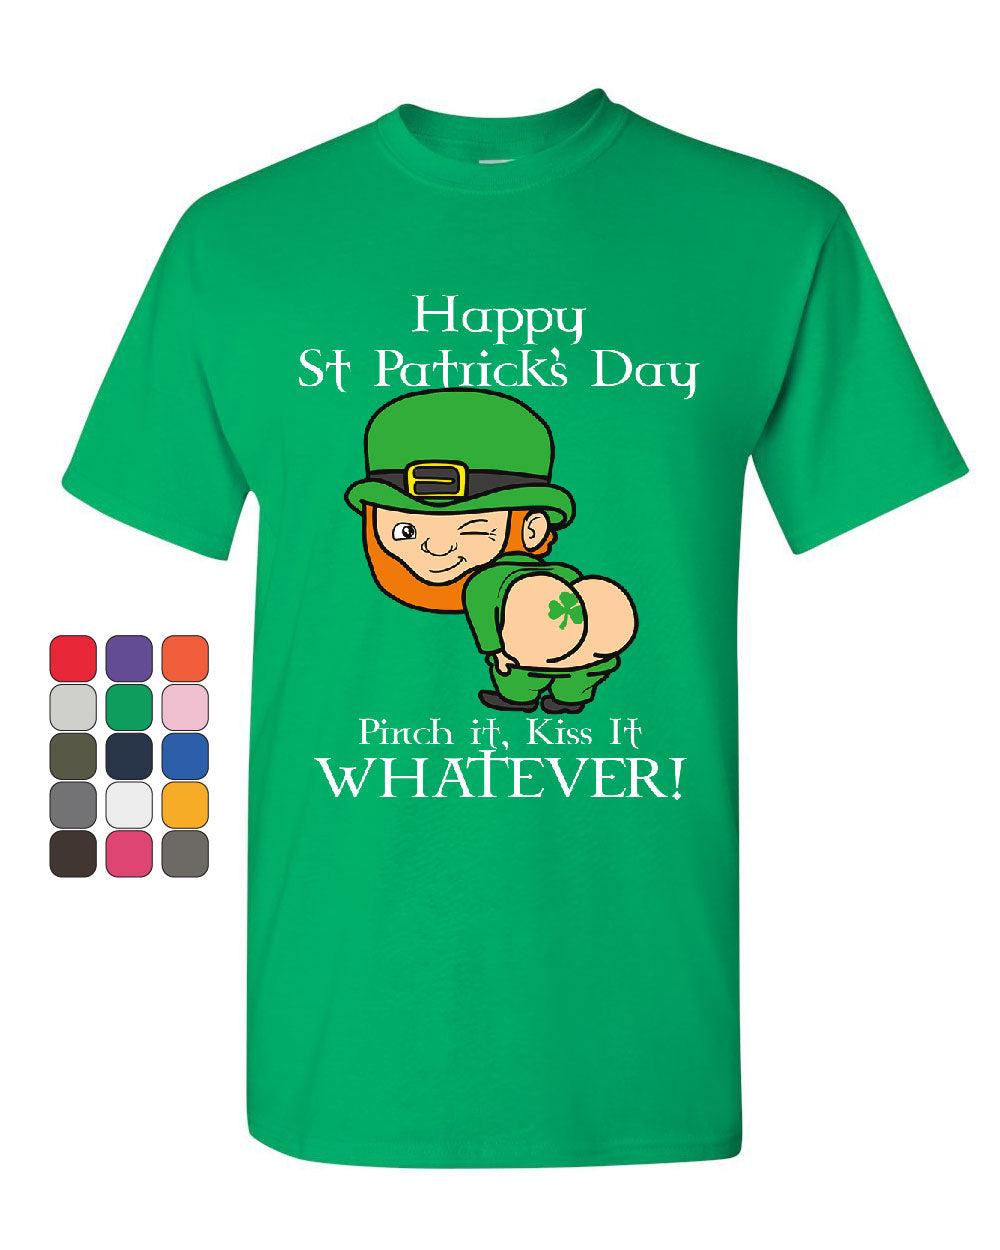 f6344f27 Leprechaun Bottom Pinch It T-Shirt St. Patrick's Day Funny Beer Mens Tee  Shirt